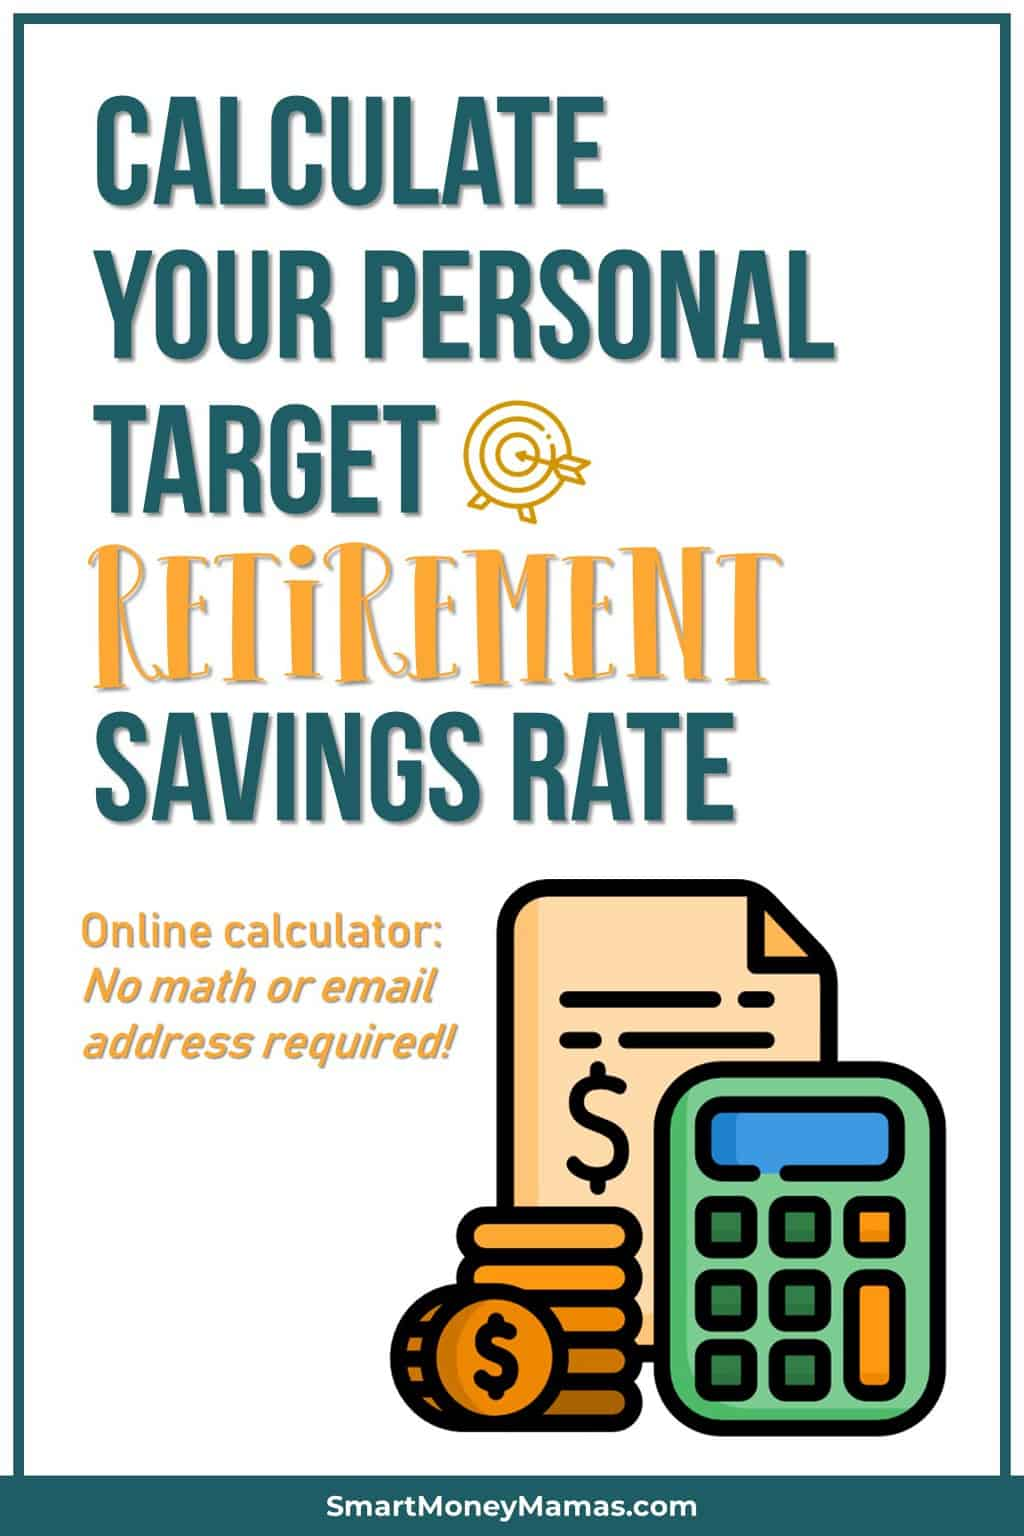 Calculator your personal target retirement savings rate | Online calculator: No math or email address required!